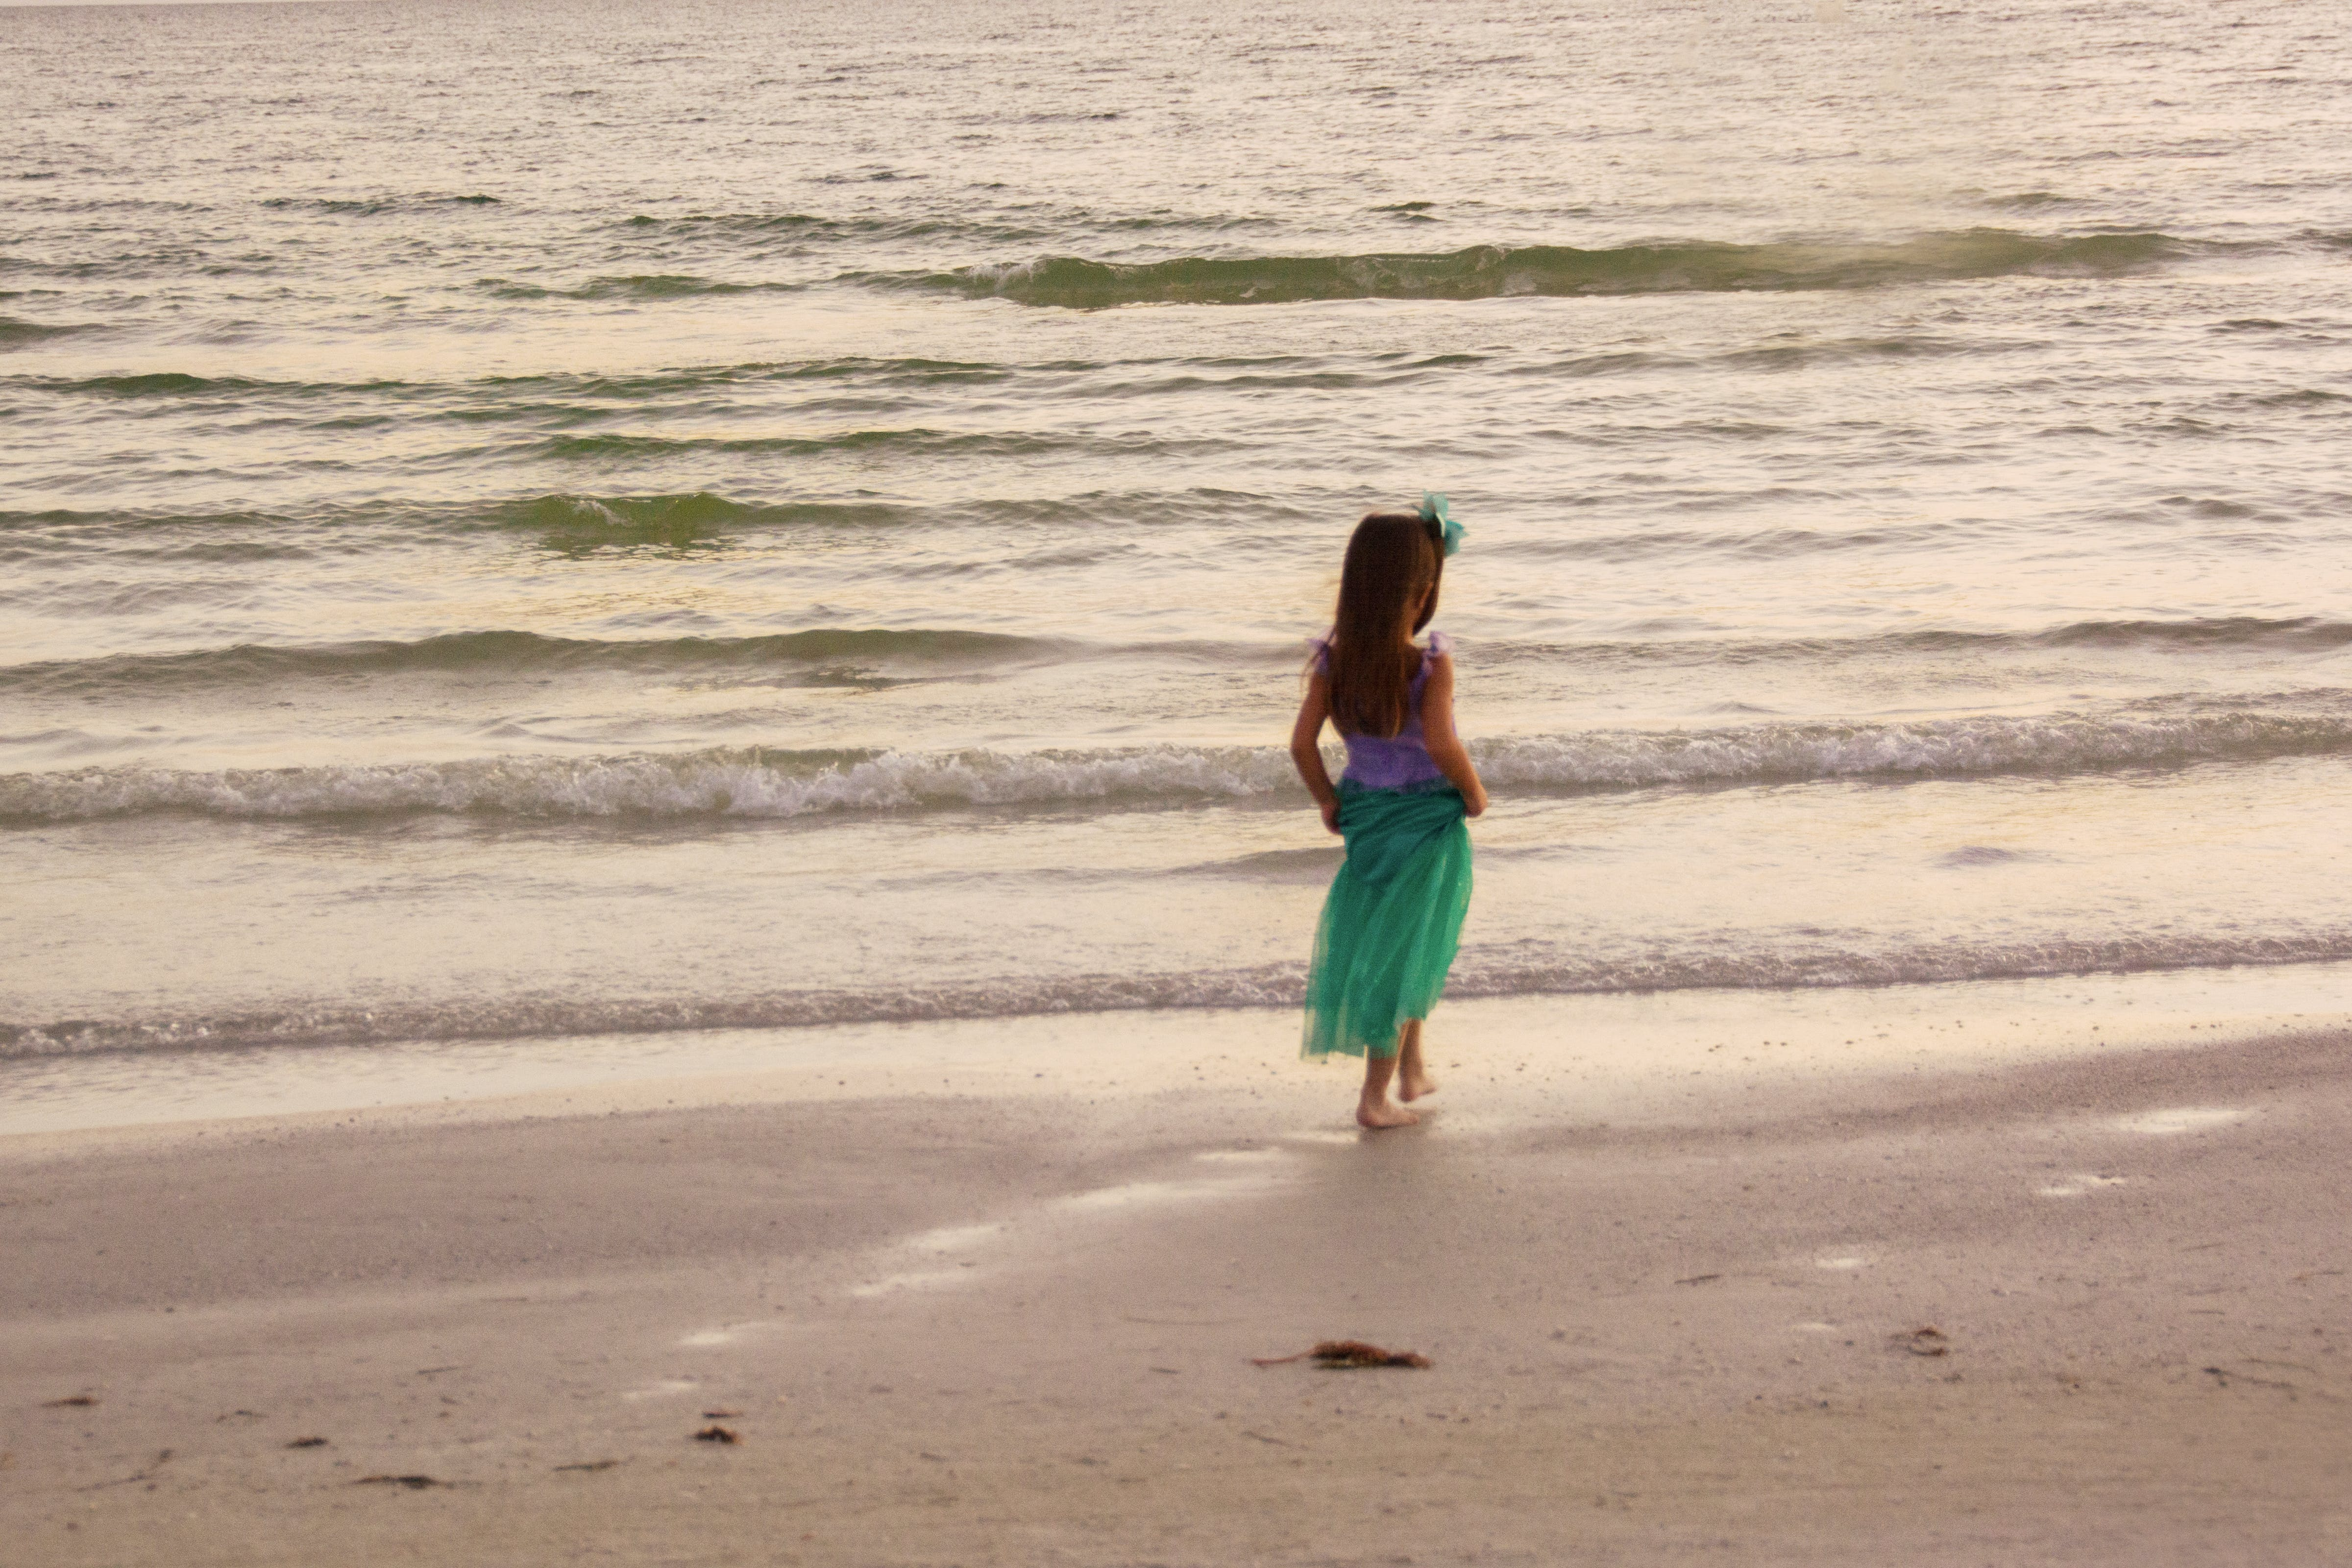 Free stock photo of Little Mermaid at the Sea